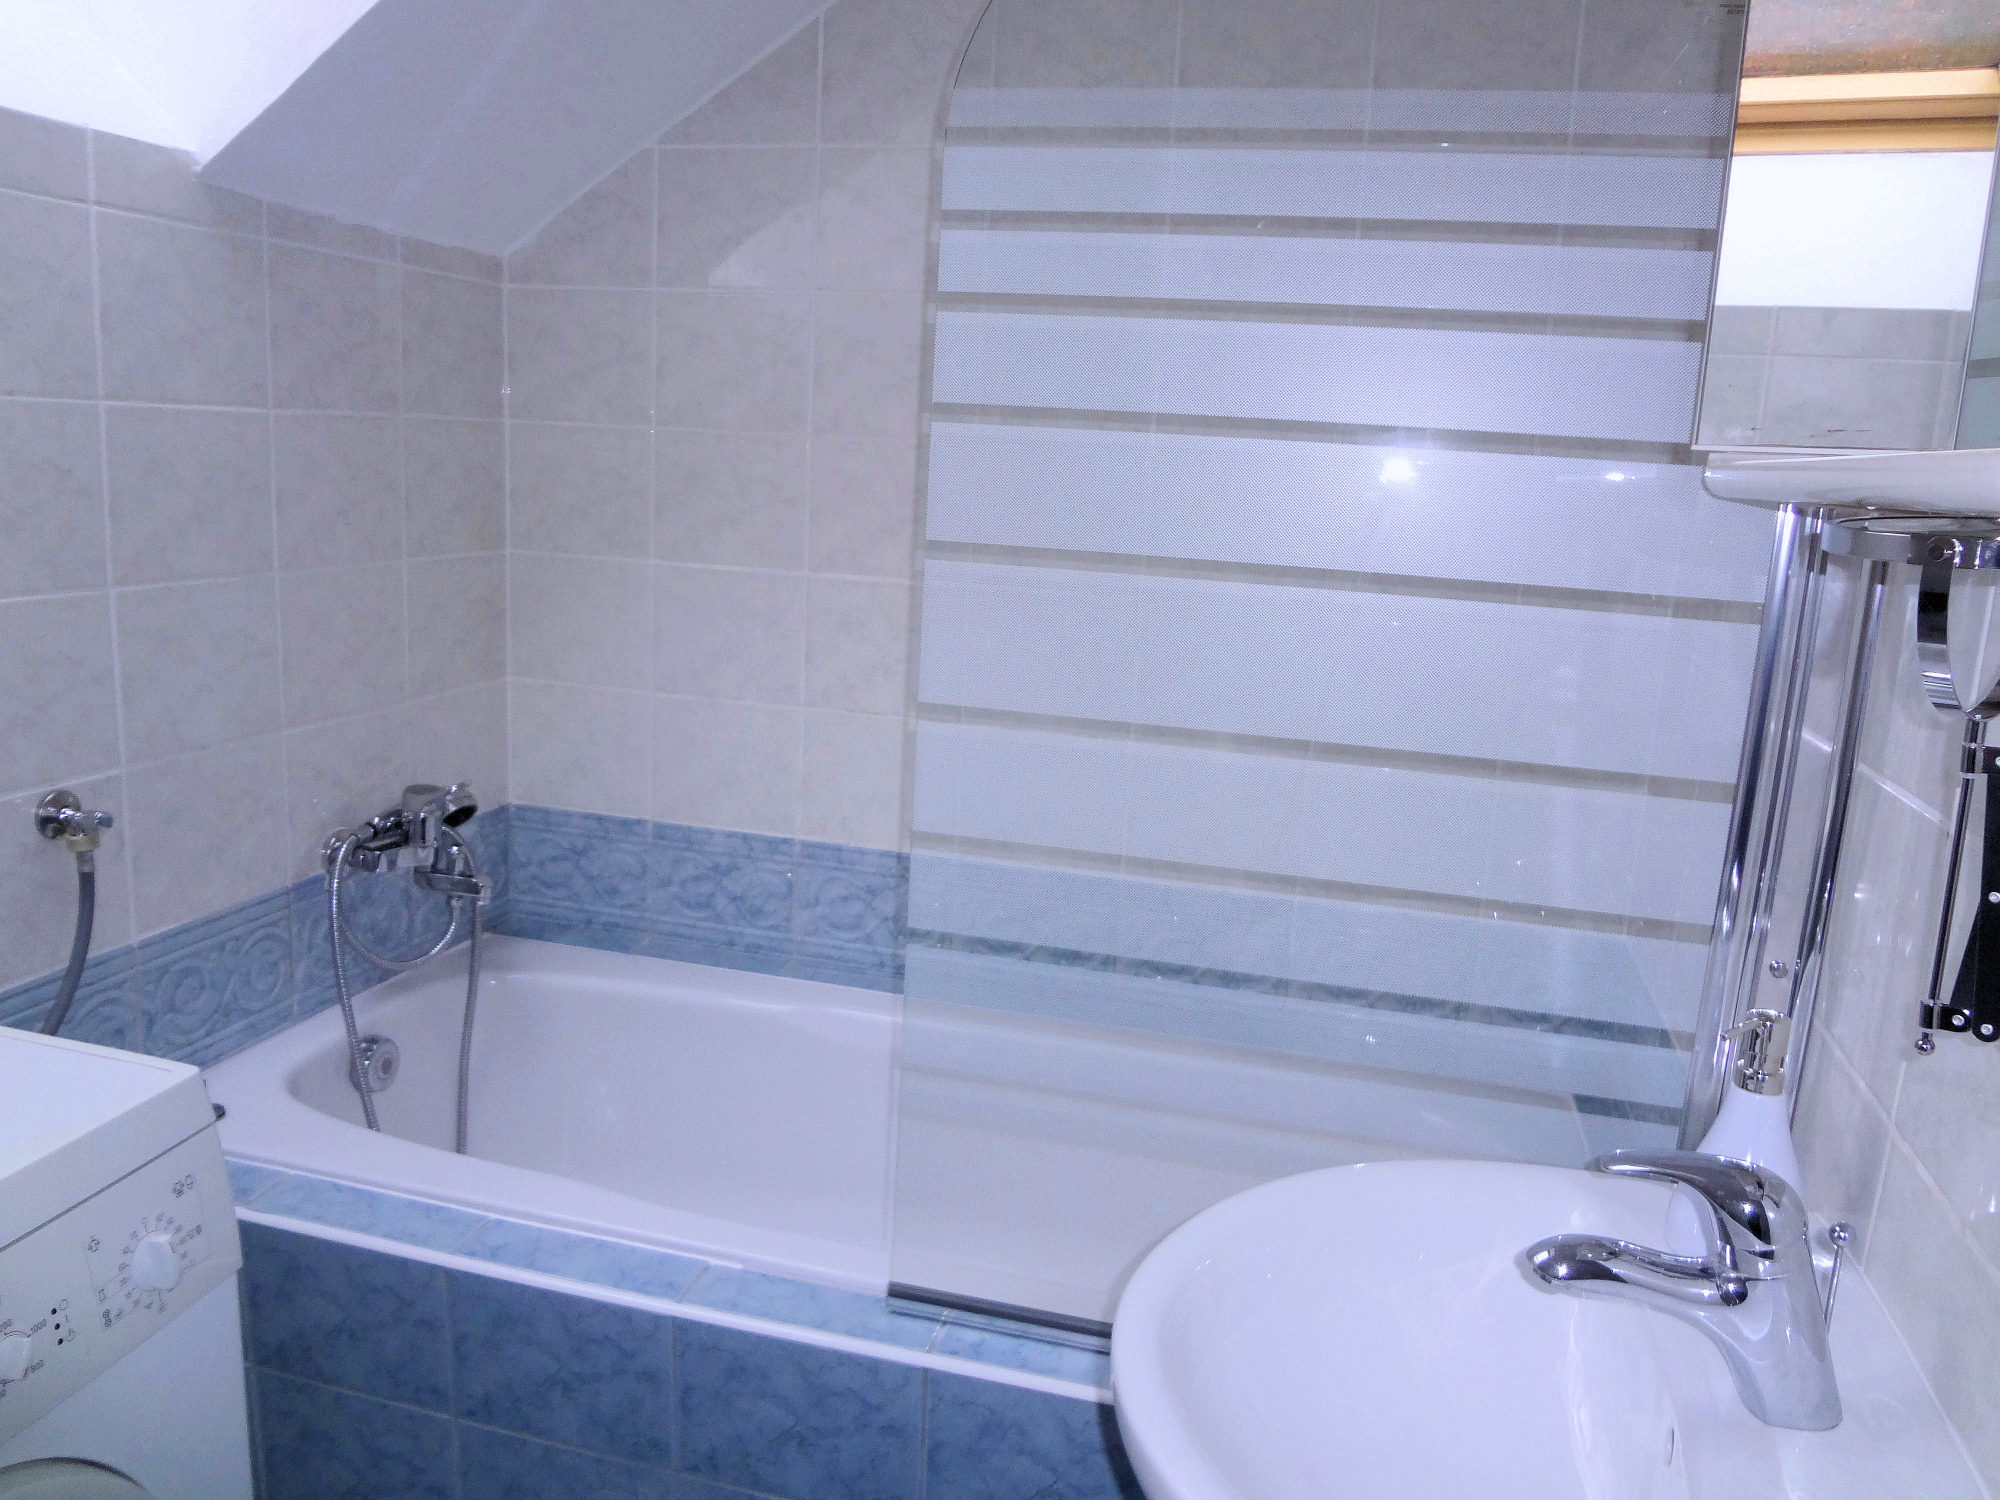 A bathtub in the bathroom of Apartments Fine Stay in the Bled area of Slovenia